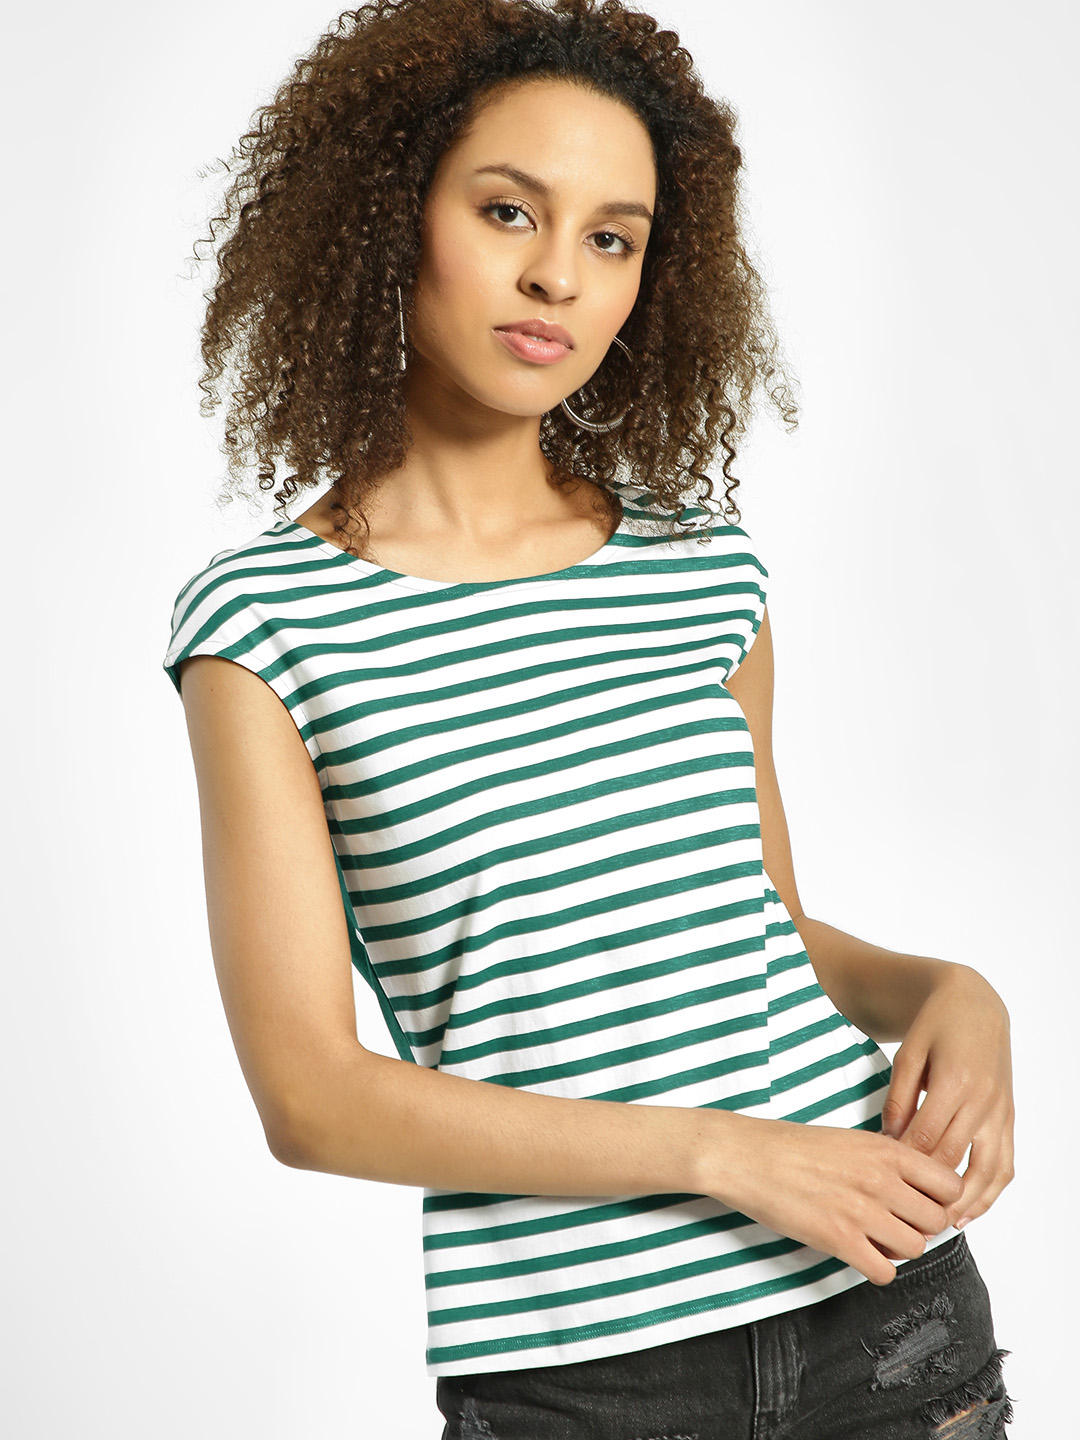 United Colors of Benetton Green Stripe Polka Dot Print T-Shirt 1